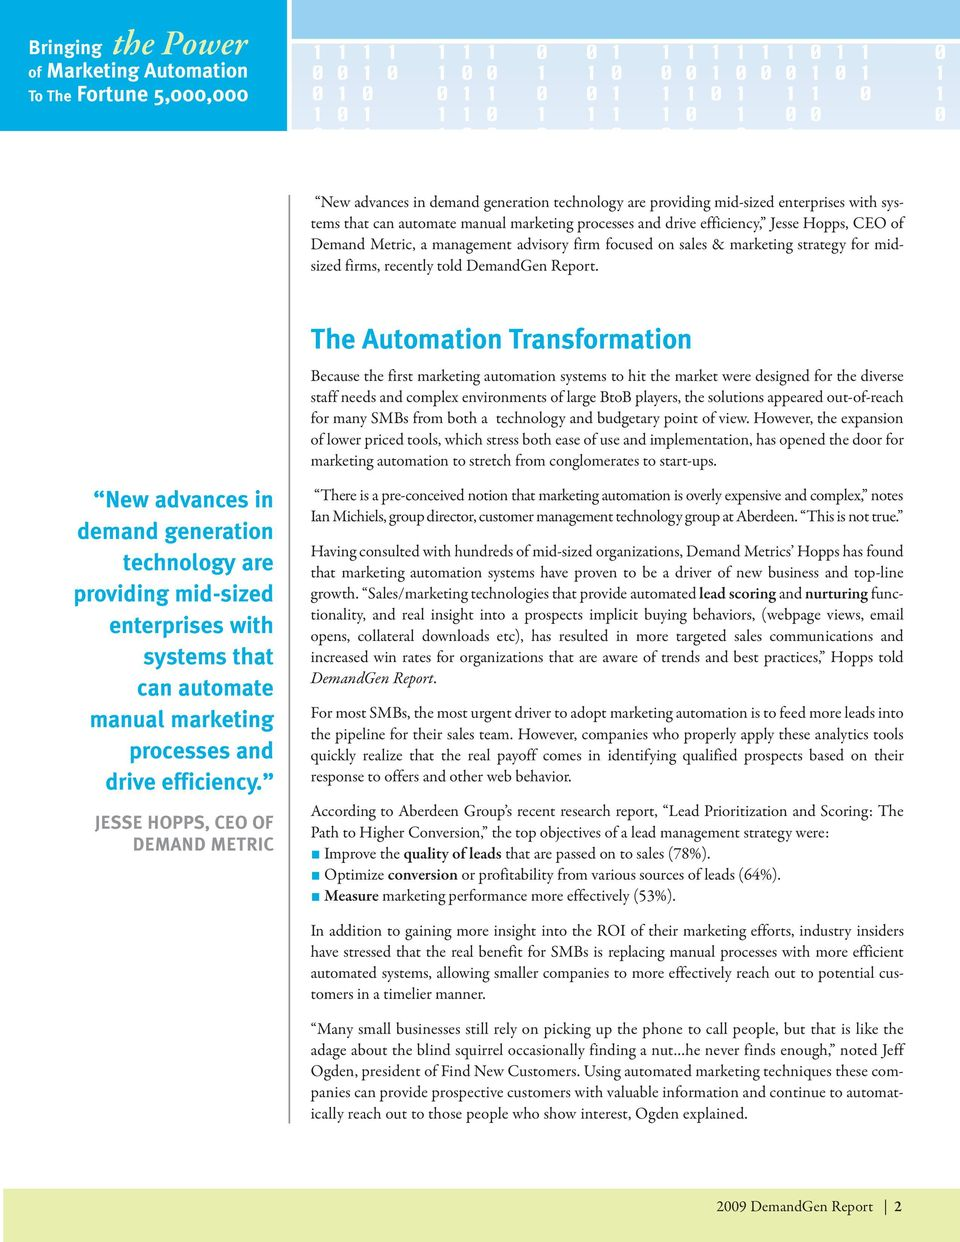 The Automation Transformation Because the first marketing automation systems to hit the market were designed for the diverse staff needs and complex environments of large BtoB players, the solutions